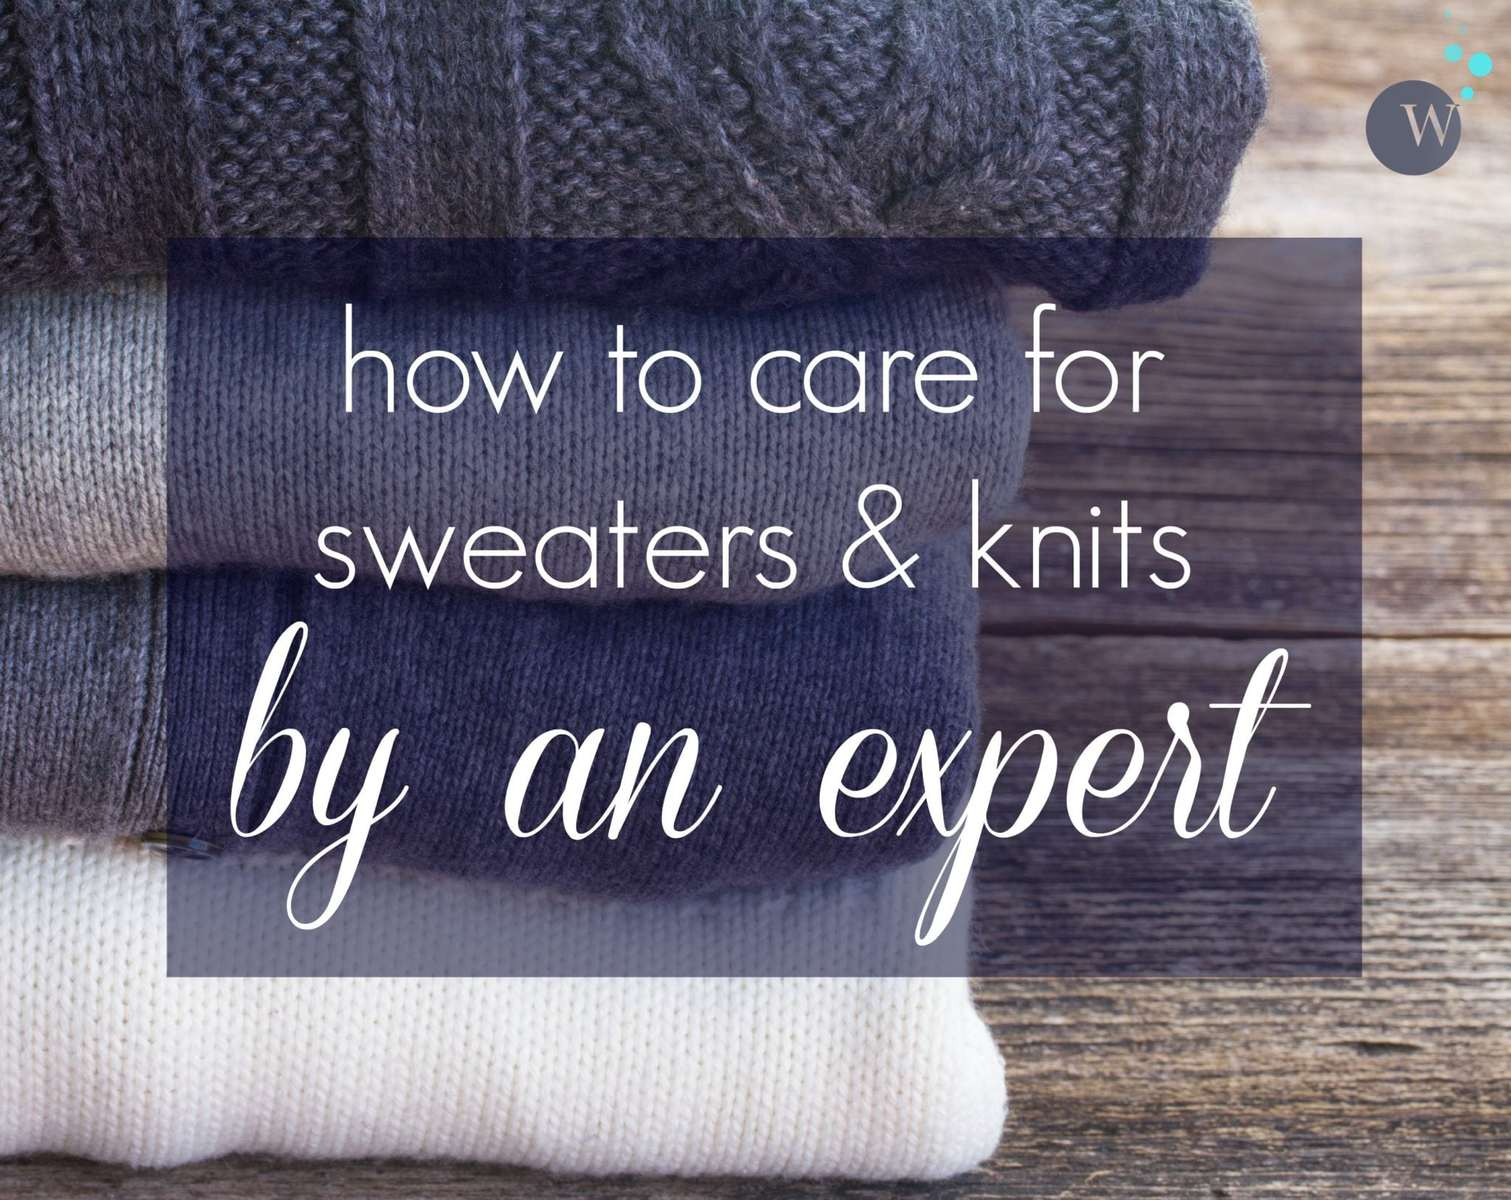 Expert advice on how to care for and launder sweaters and knitwear